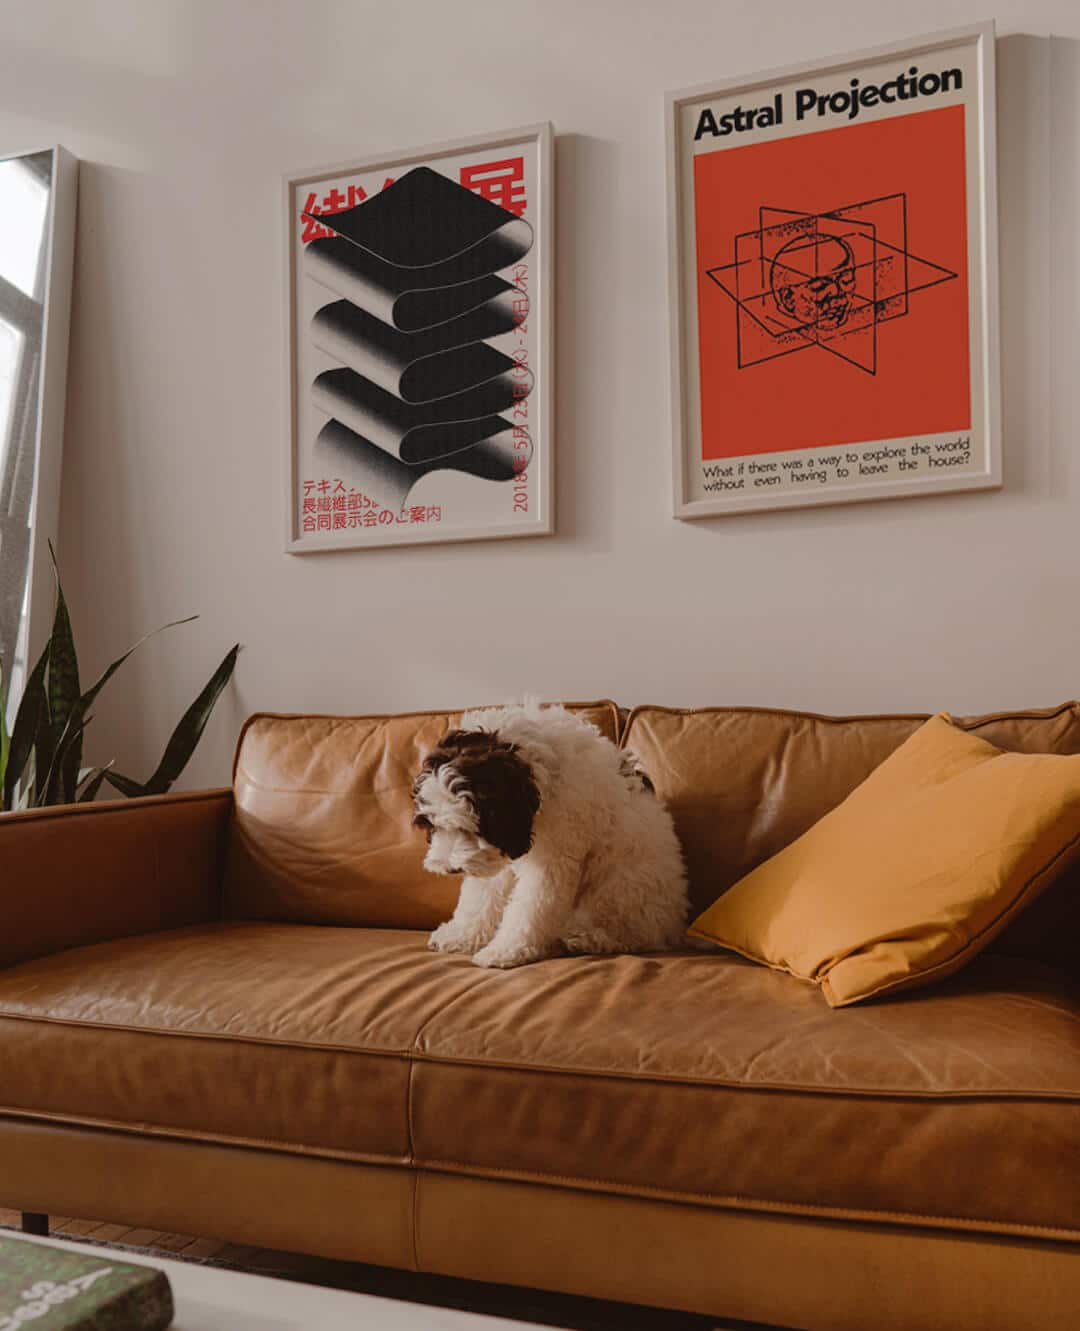 2 Art Prints Framed On The Wall In The Lounge Above A Sofa And Dog